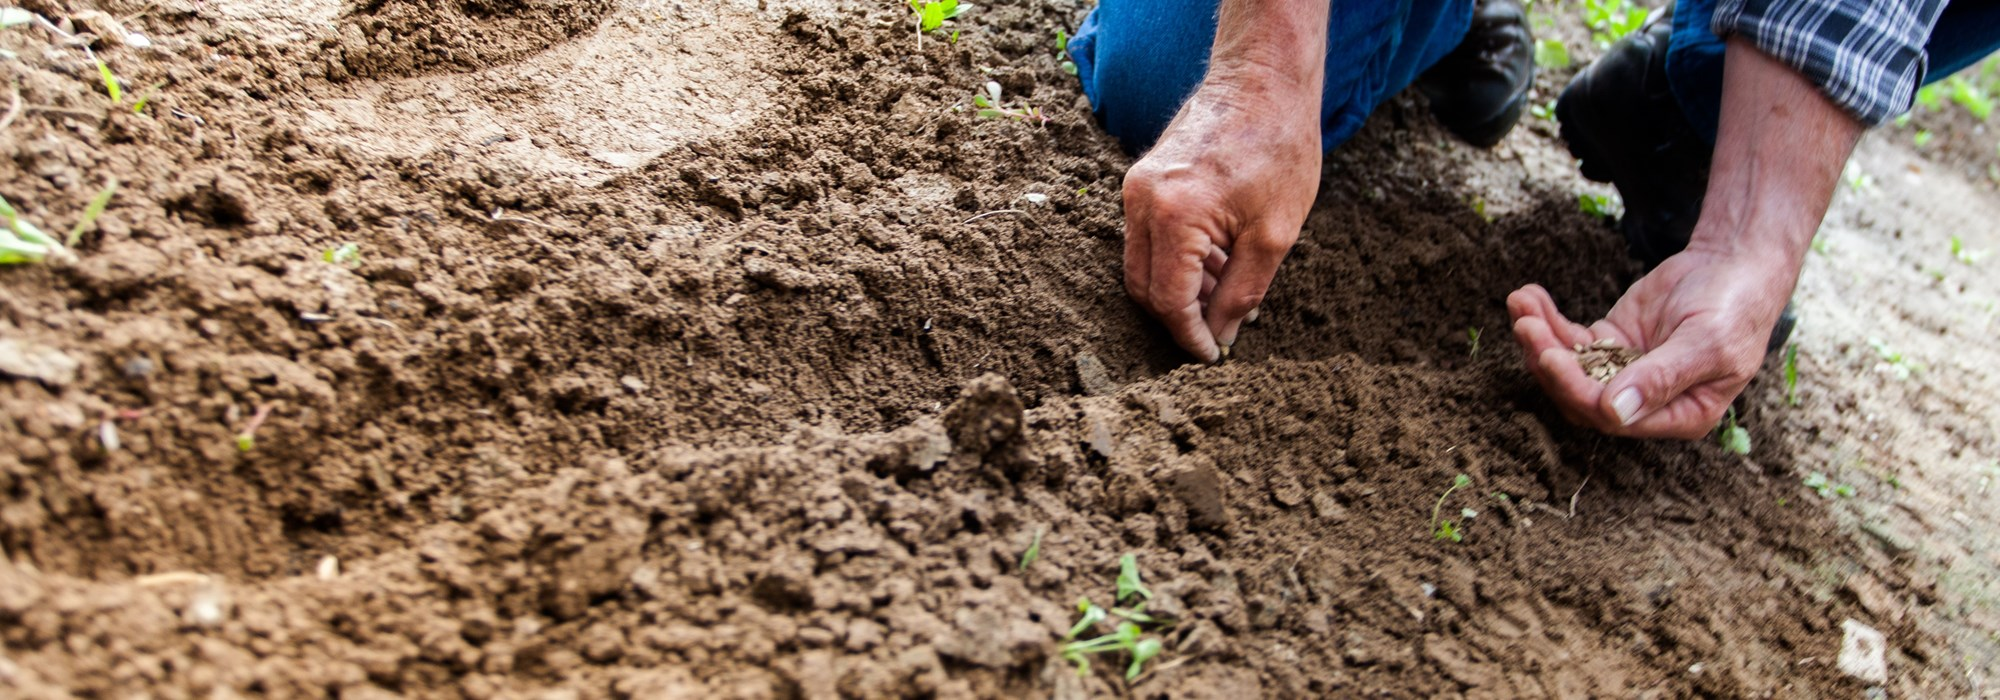 Man planting in soil